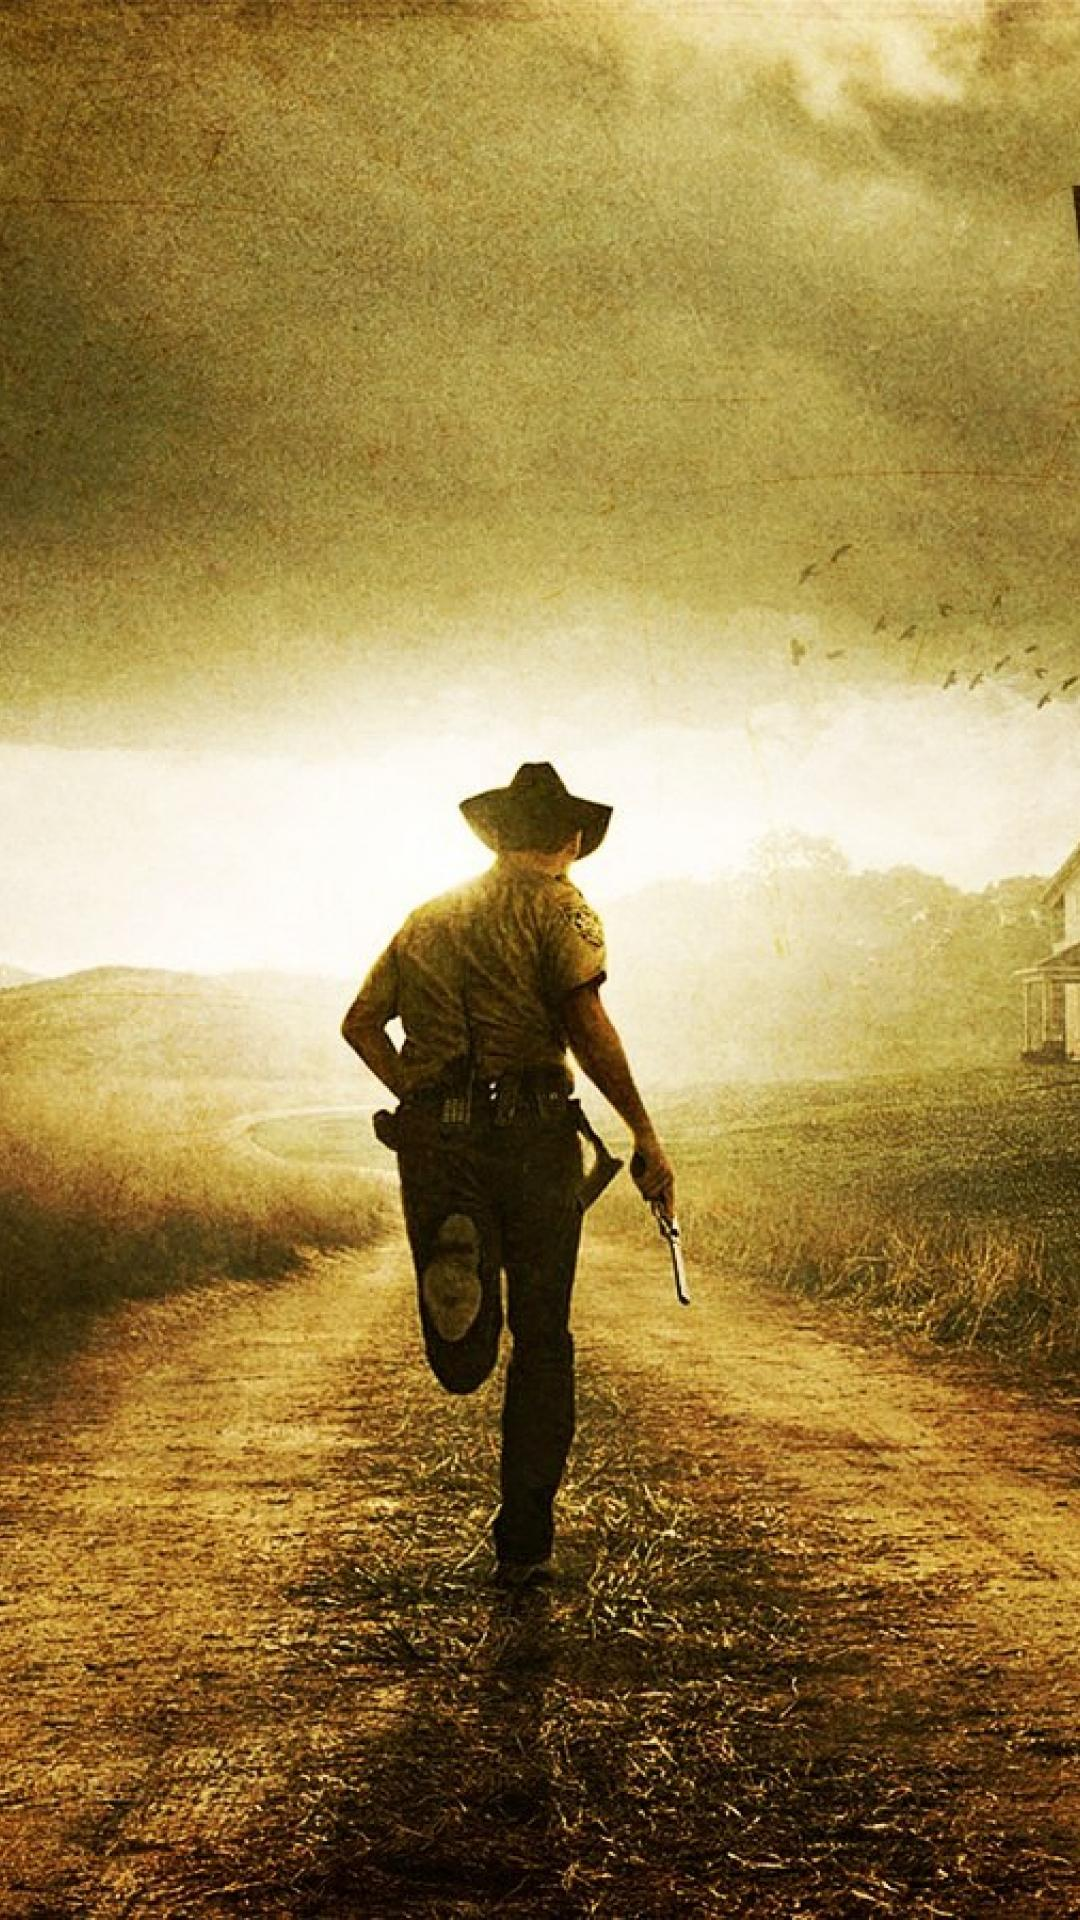 Iphone 6 Wallpaper Fall Leaves The Walking Dead Wallpapers For Iphone And Ipad